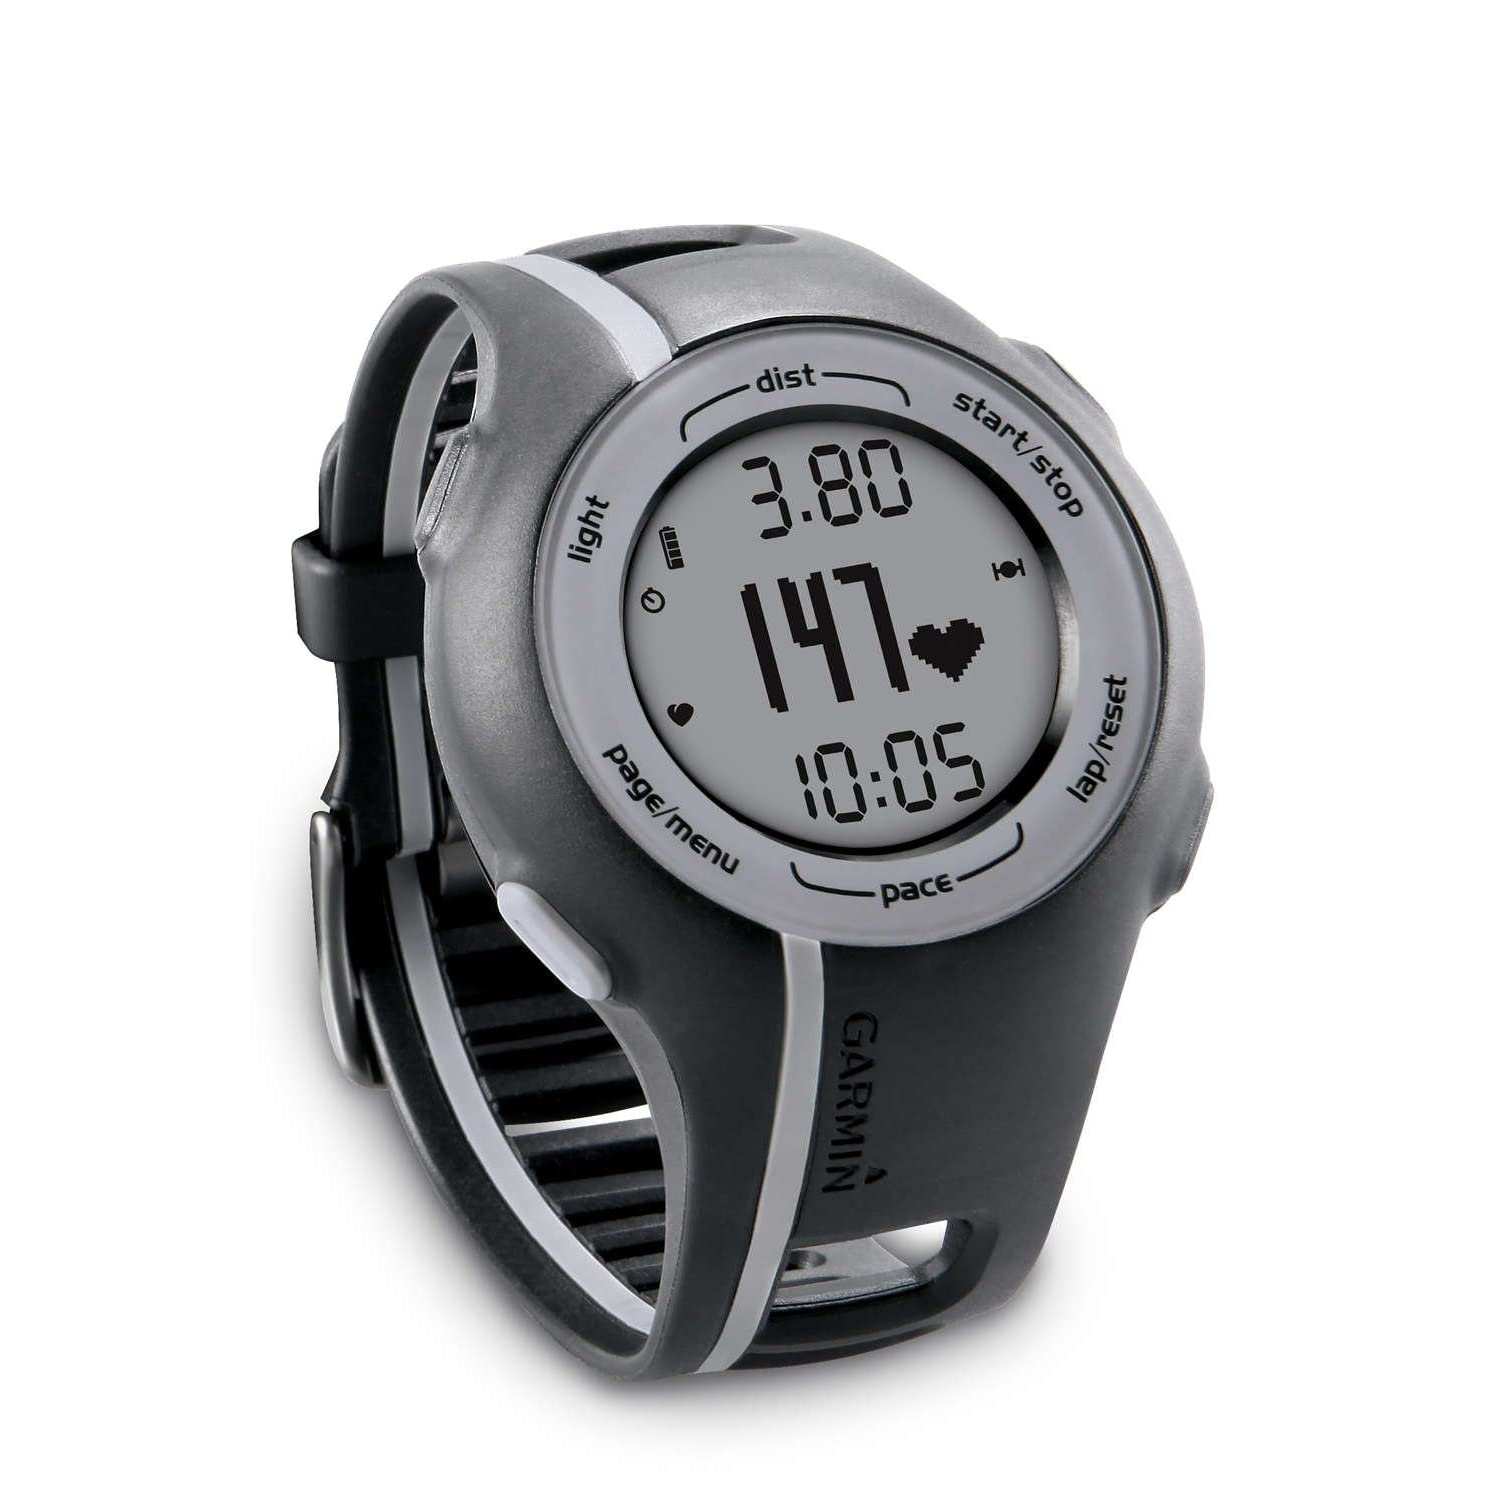 Garmin forerunner enabled unisex sports watch